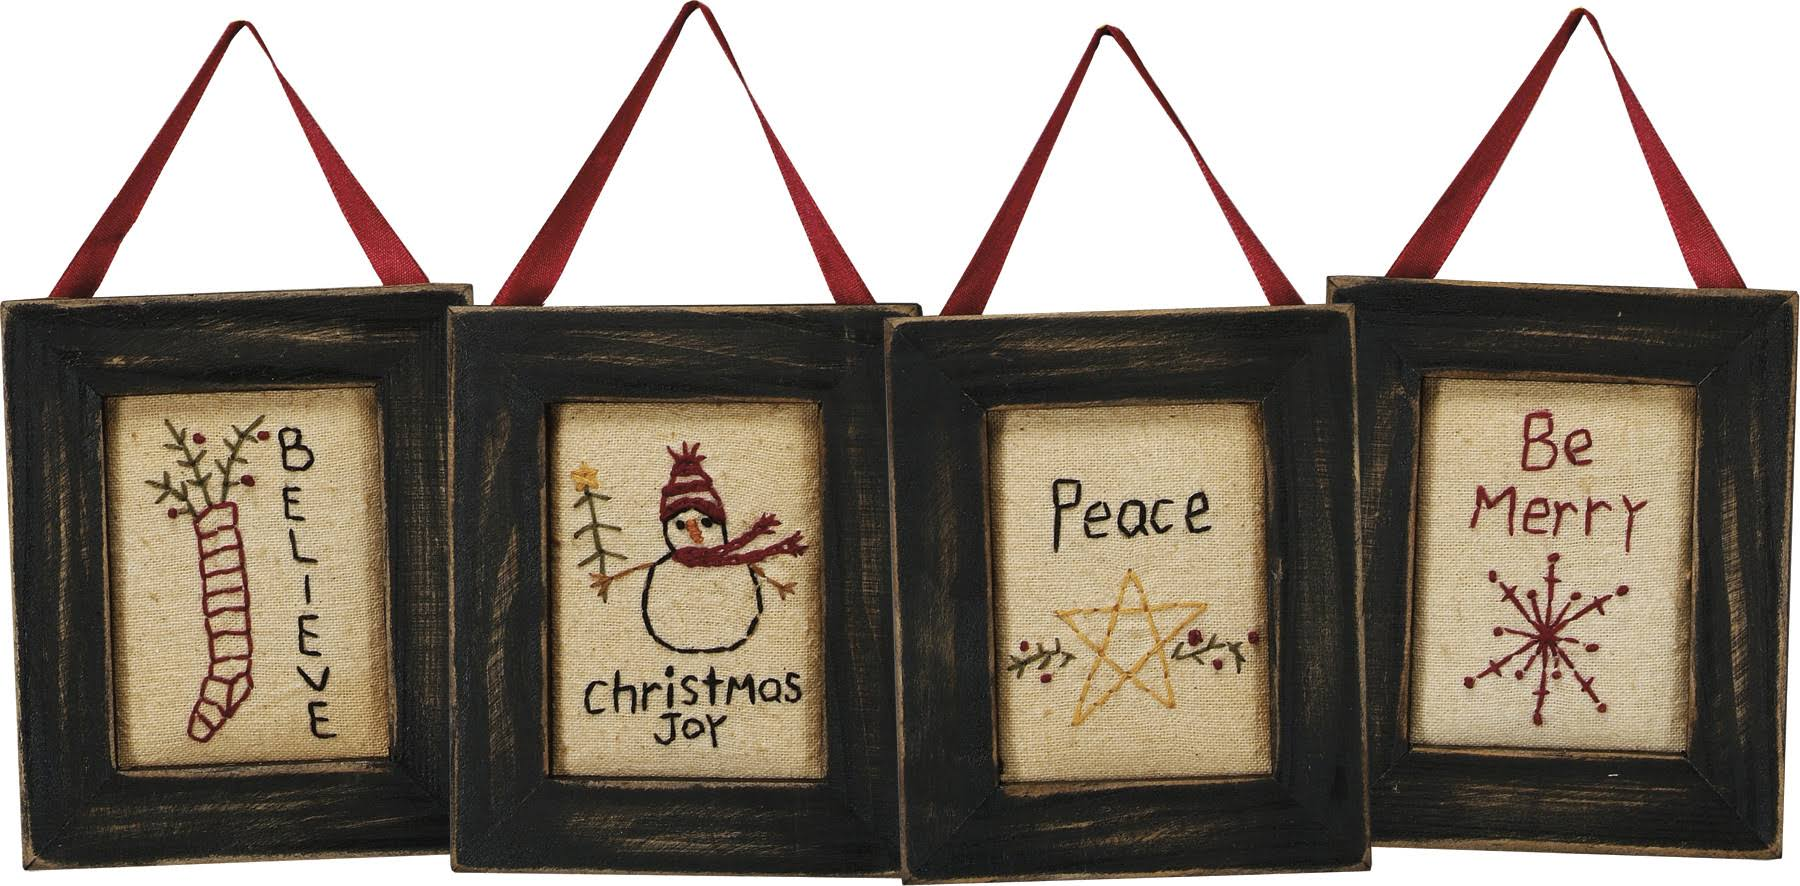 Primitives by Kathy | 16500 Wall Decor Set - Be Merry of 2 by